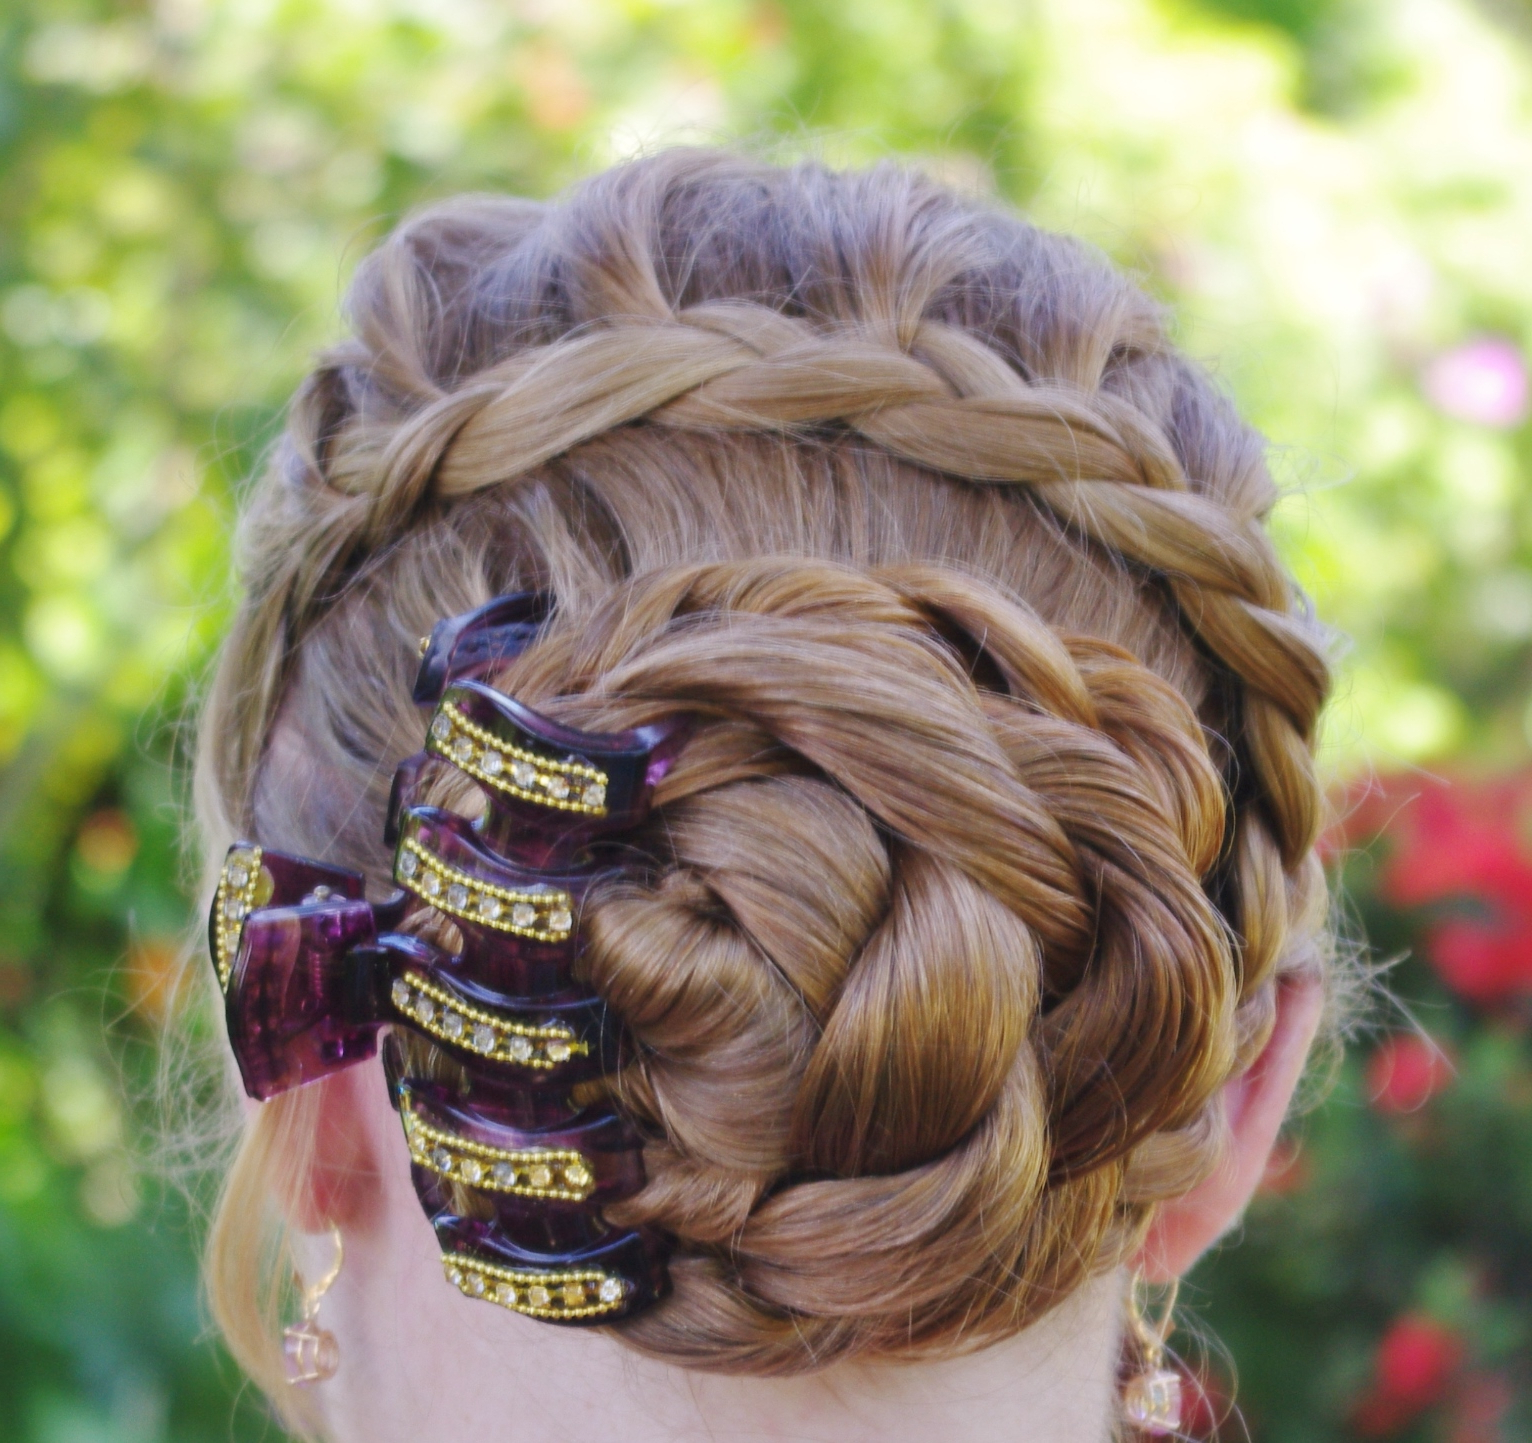 Latest Rolled Roses Braids Hairstyles Within Braids & Hairstyles For Super Long Hair: My Look For Today (View 3 of 20)